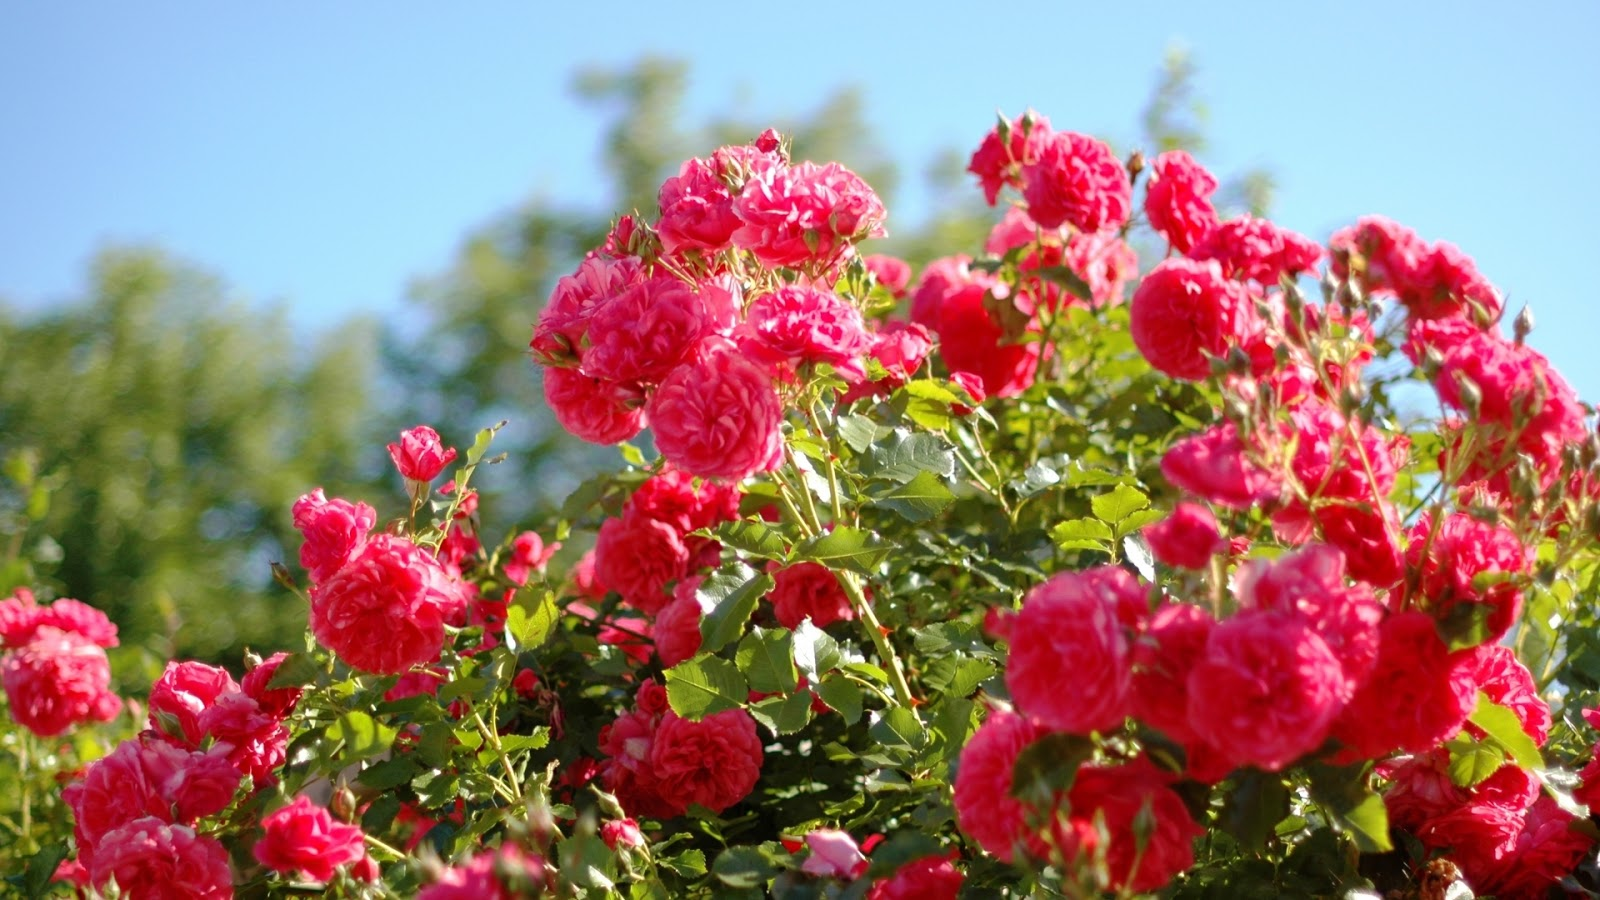 Rose flower garden flower hd wallpapers images for Garden flower